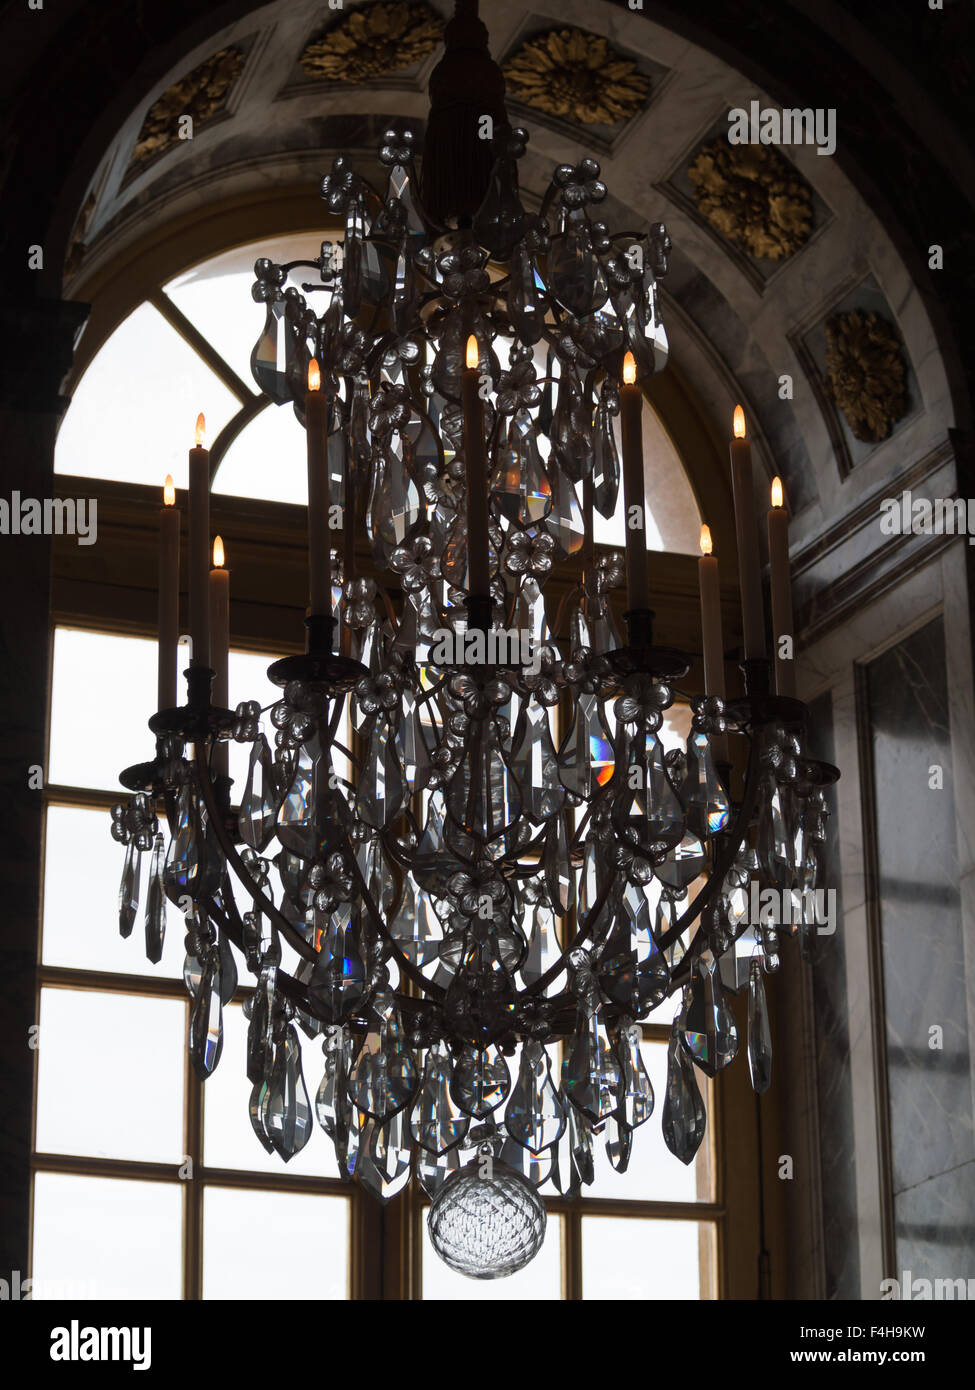 Crystal chandelier of the versailles palace mirror room stock photo crystal chandelier of the versailles palace mirror room aloadofball Images